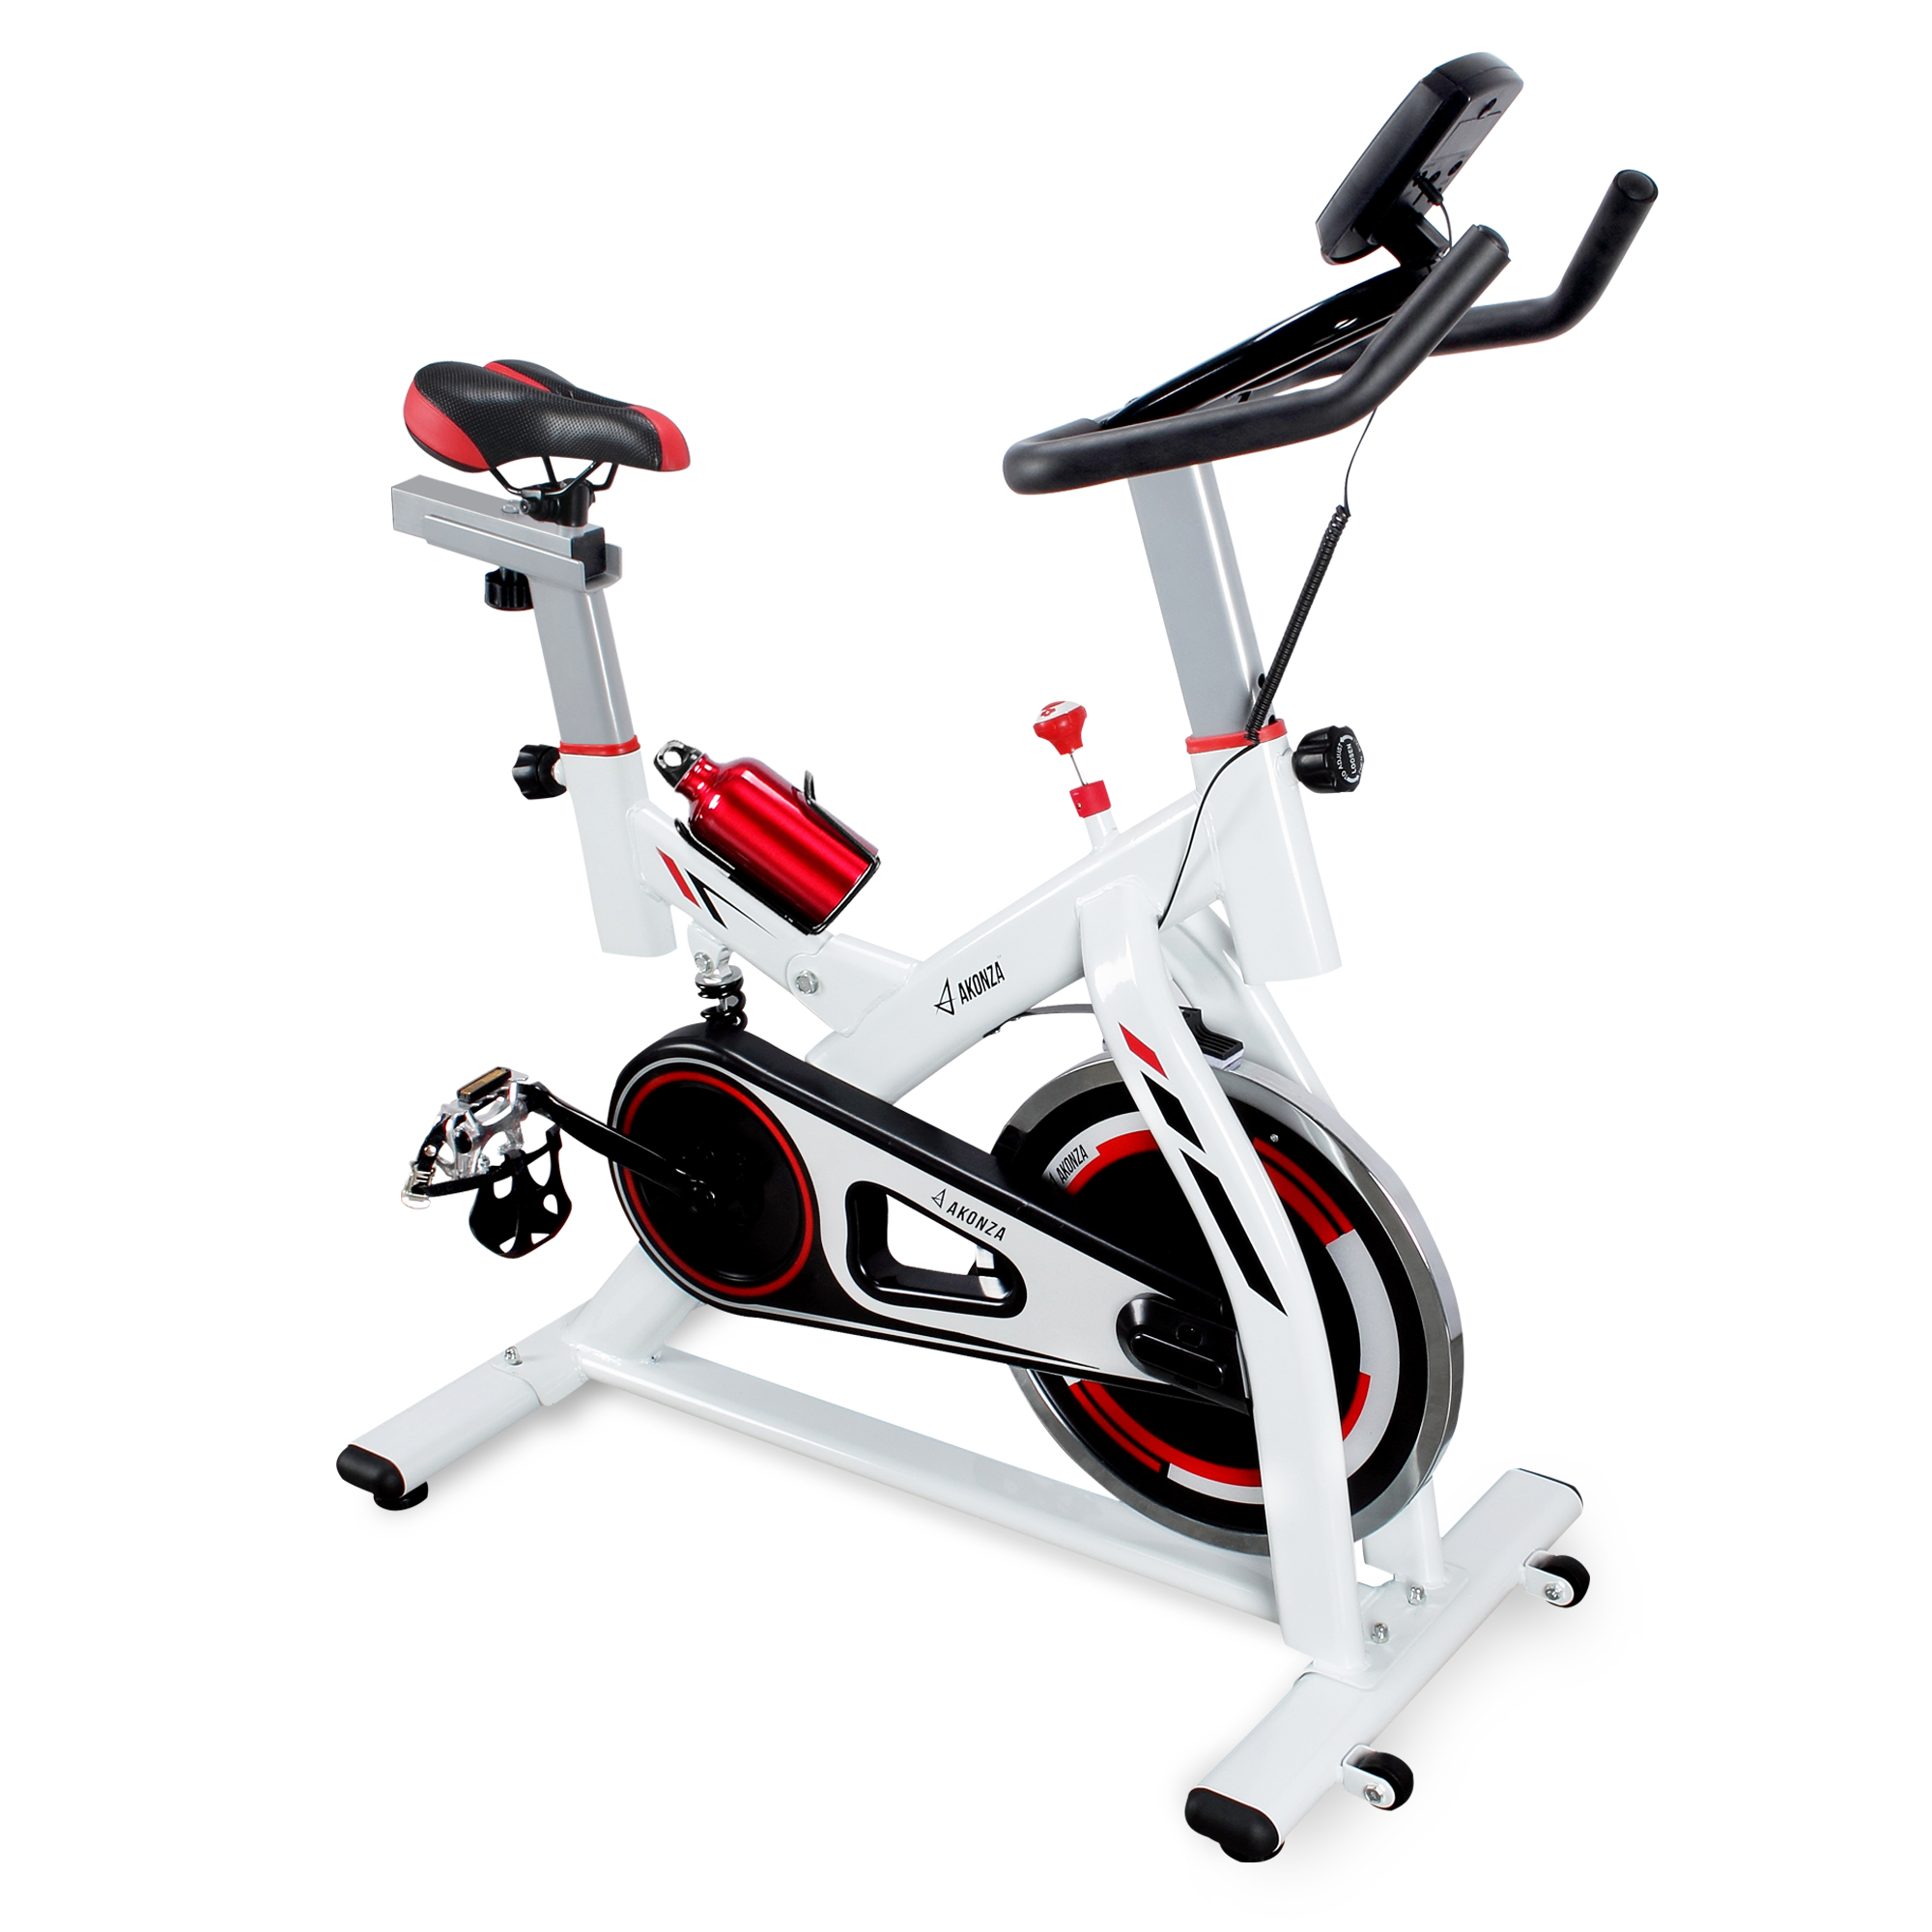 AKONZA Stationary Indoor Cycling Exercise Bicycle with Water Bottle Holder for Health & Fitness, 330lb Capacity (White)